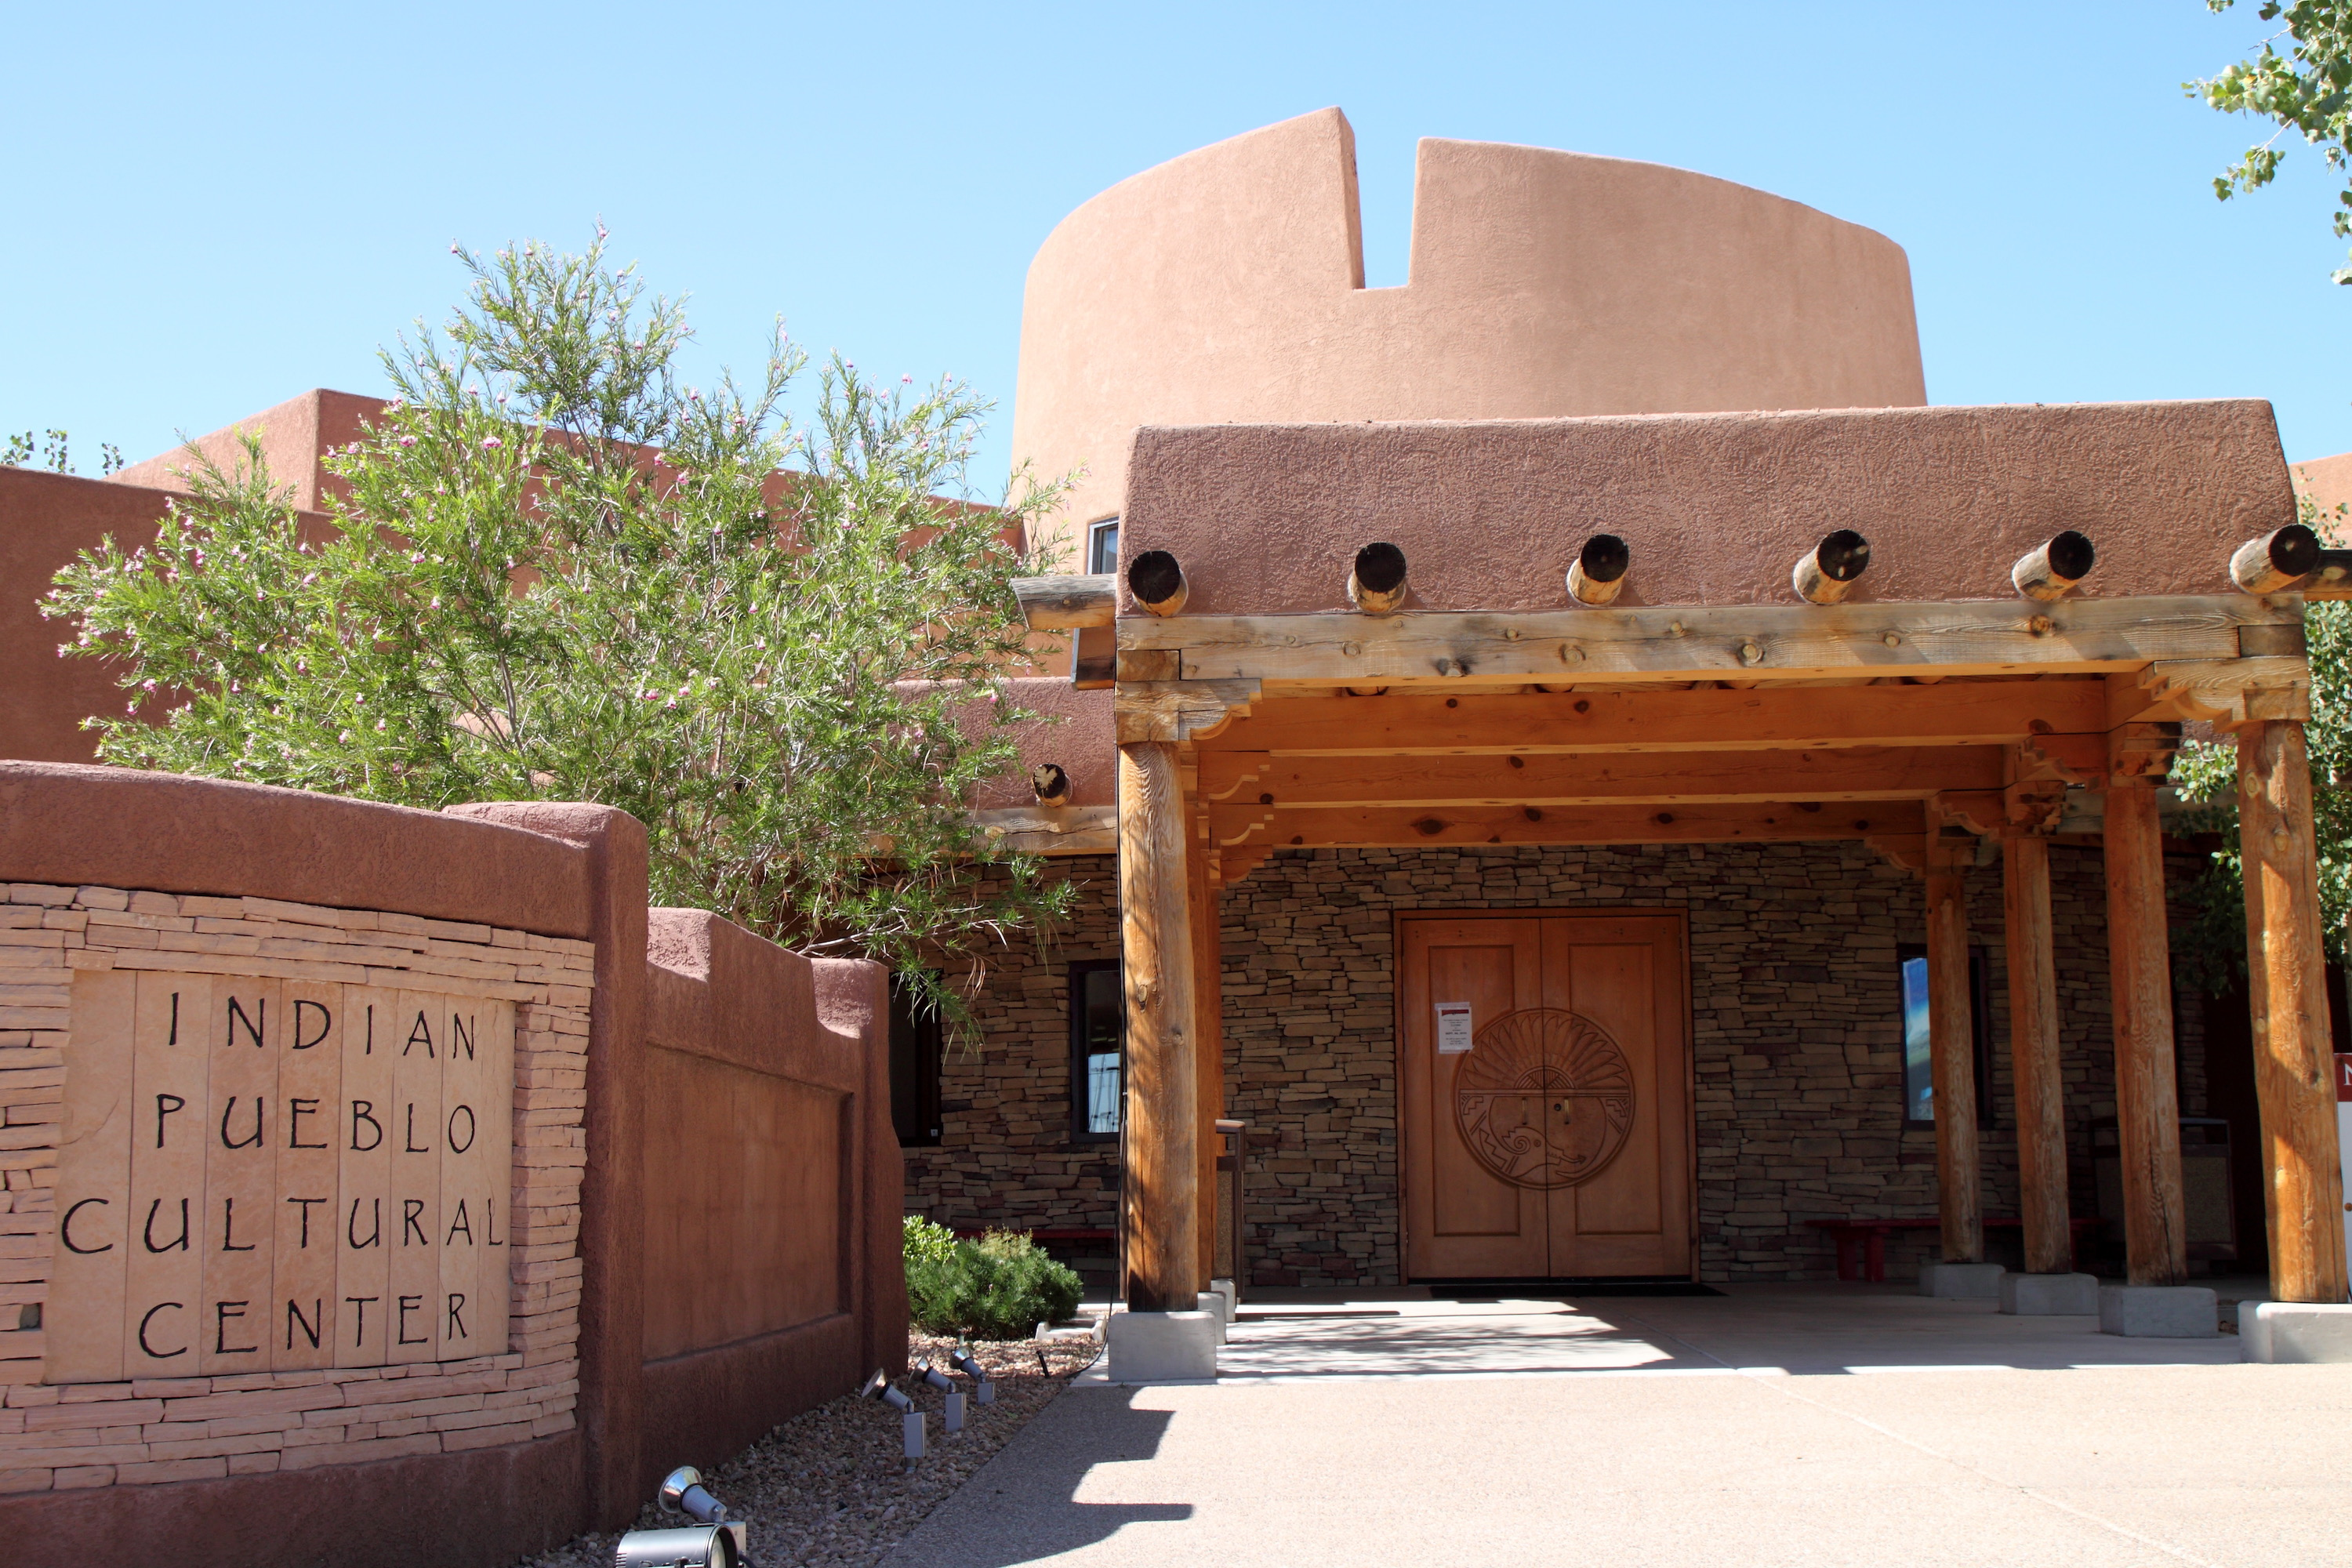 BIA approves three land-into-trust acquisitions for Pueblo tribes